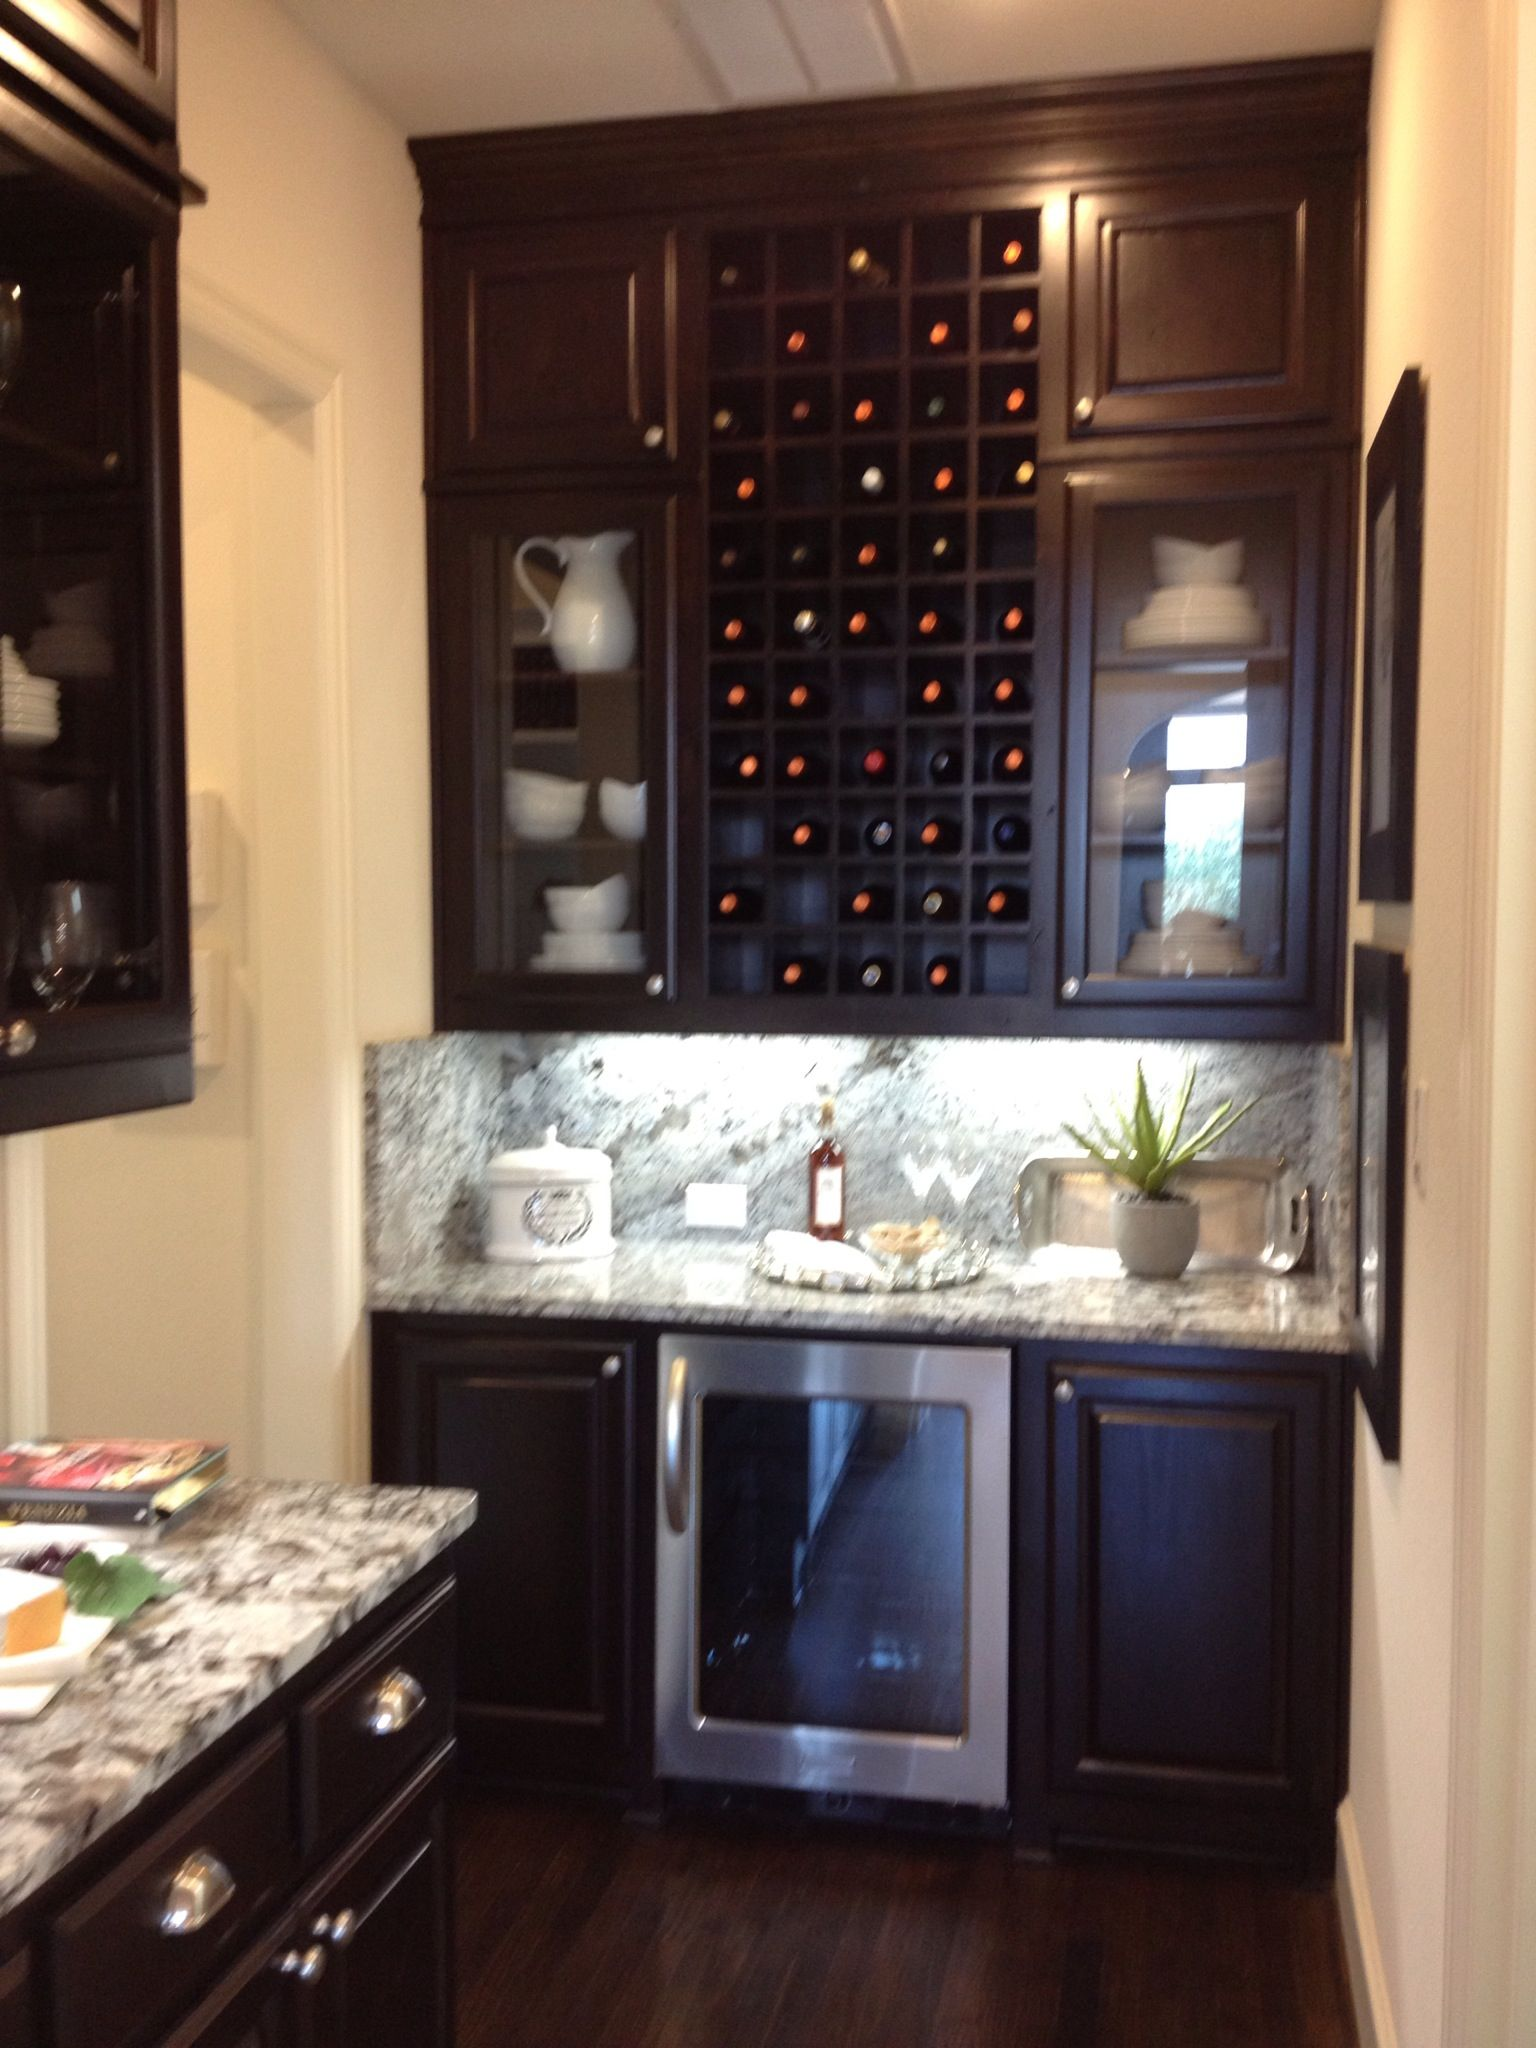 Idea to update the butler pantry area wine bar for Small bar area ideas